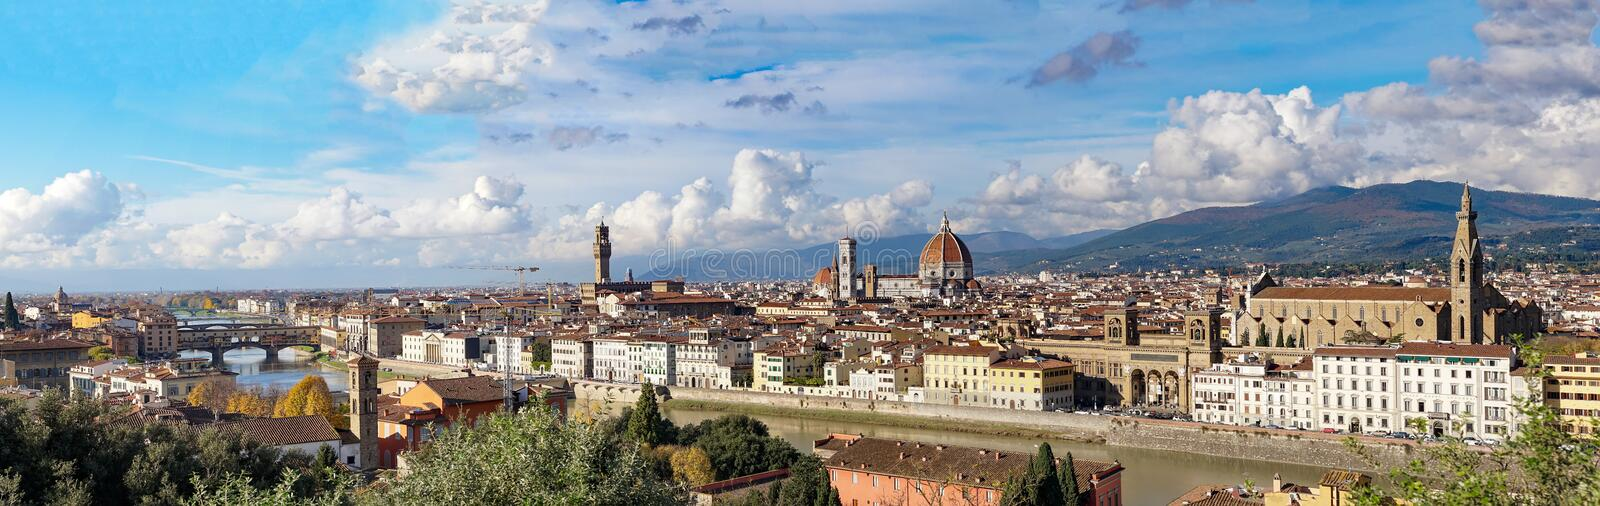 Italy. Florence. Panoramic view from Piazzale Michelangelo. stock image